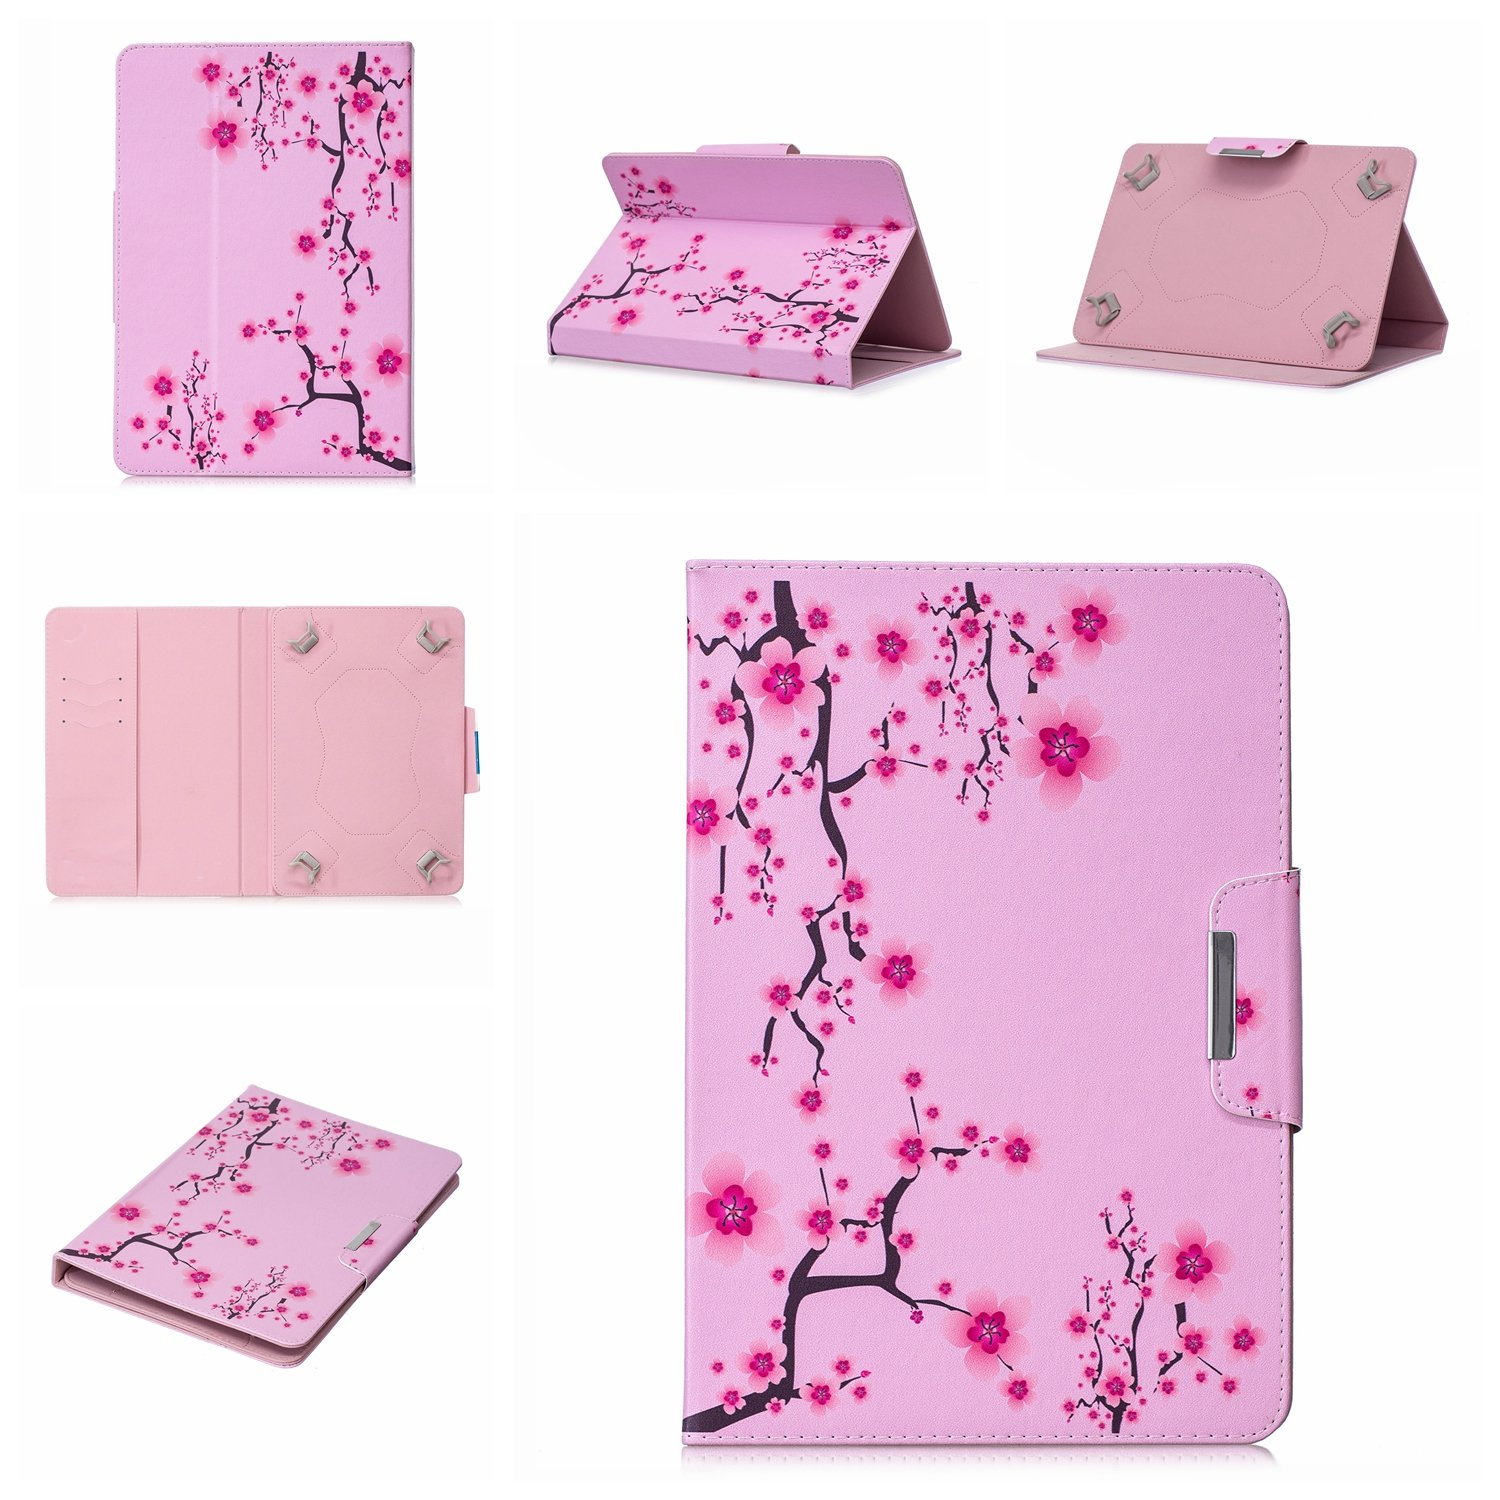 Uliking Universal Folio Case for 9-10.1 inch Tablet, PU Leather Card Slots Stand Cover for 10'' 9''-10.1'' Touchscreen Android ASUS,Acer,RCA,Dell,HP,Lenovo,Samsung,Apple,ECT, Pink Flower